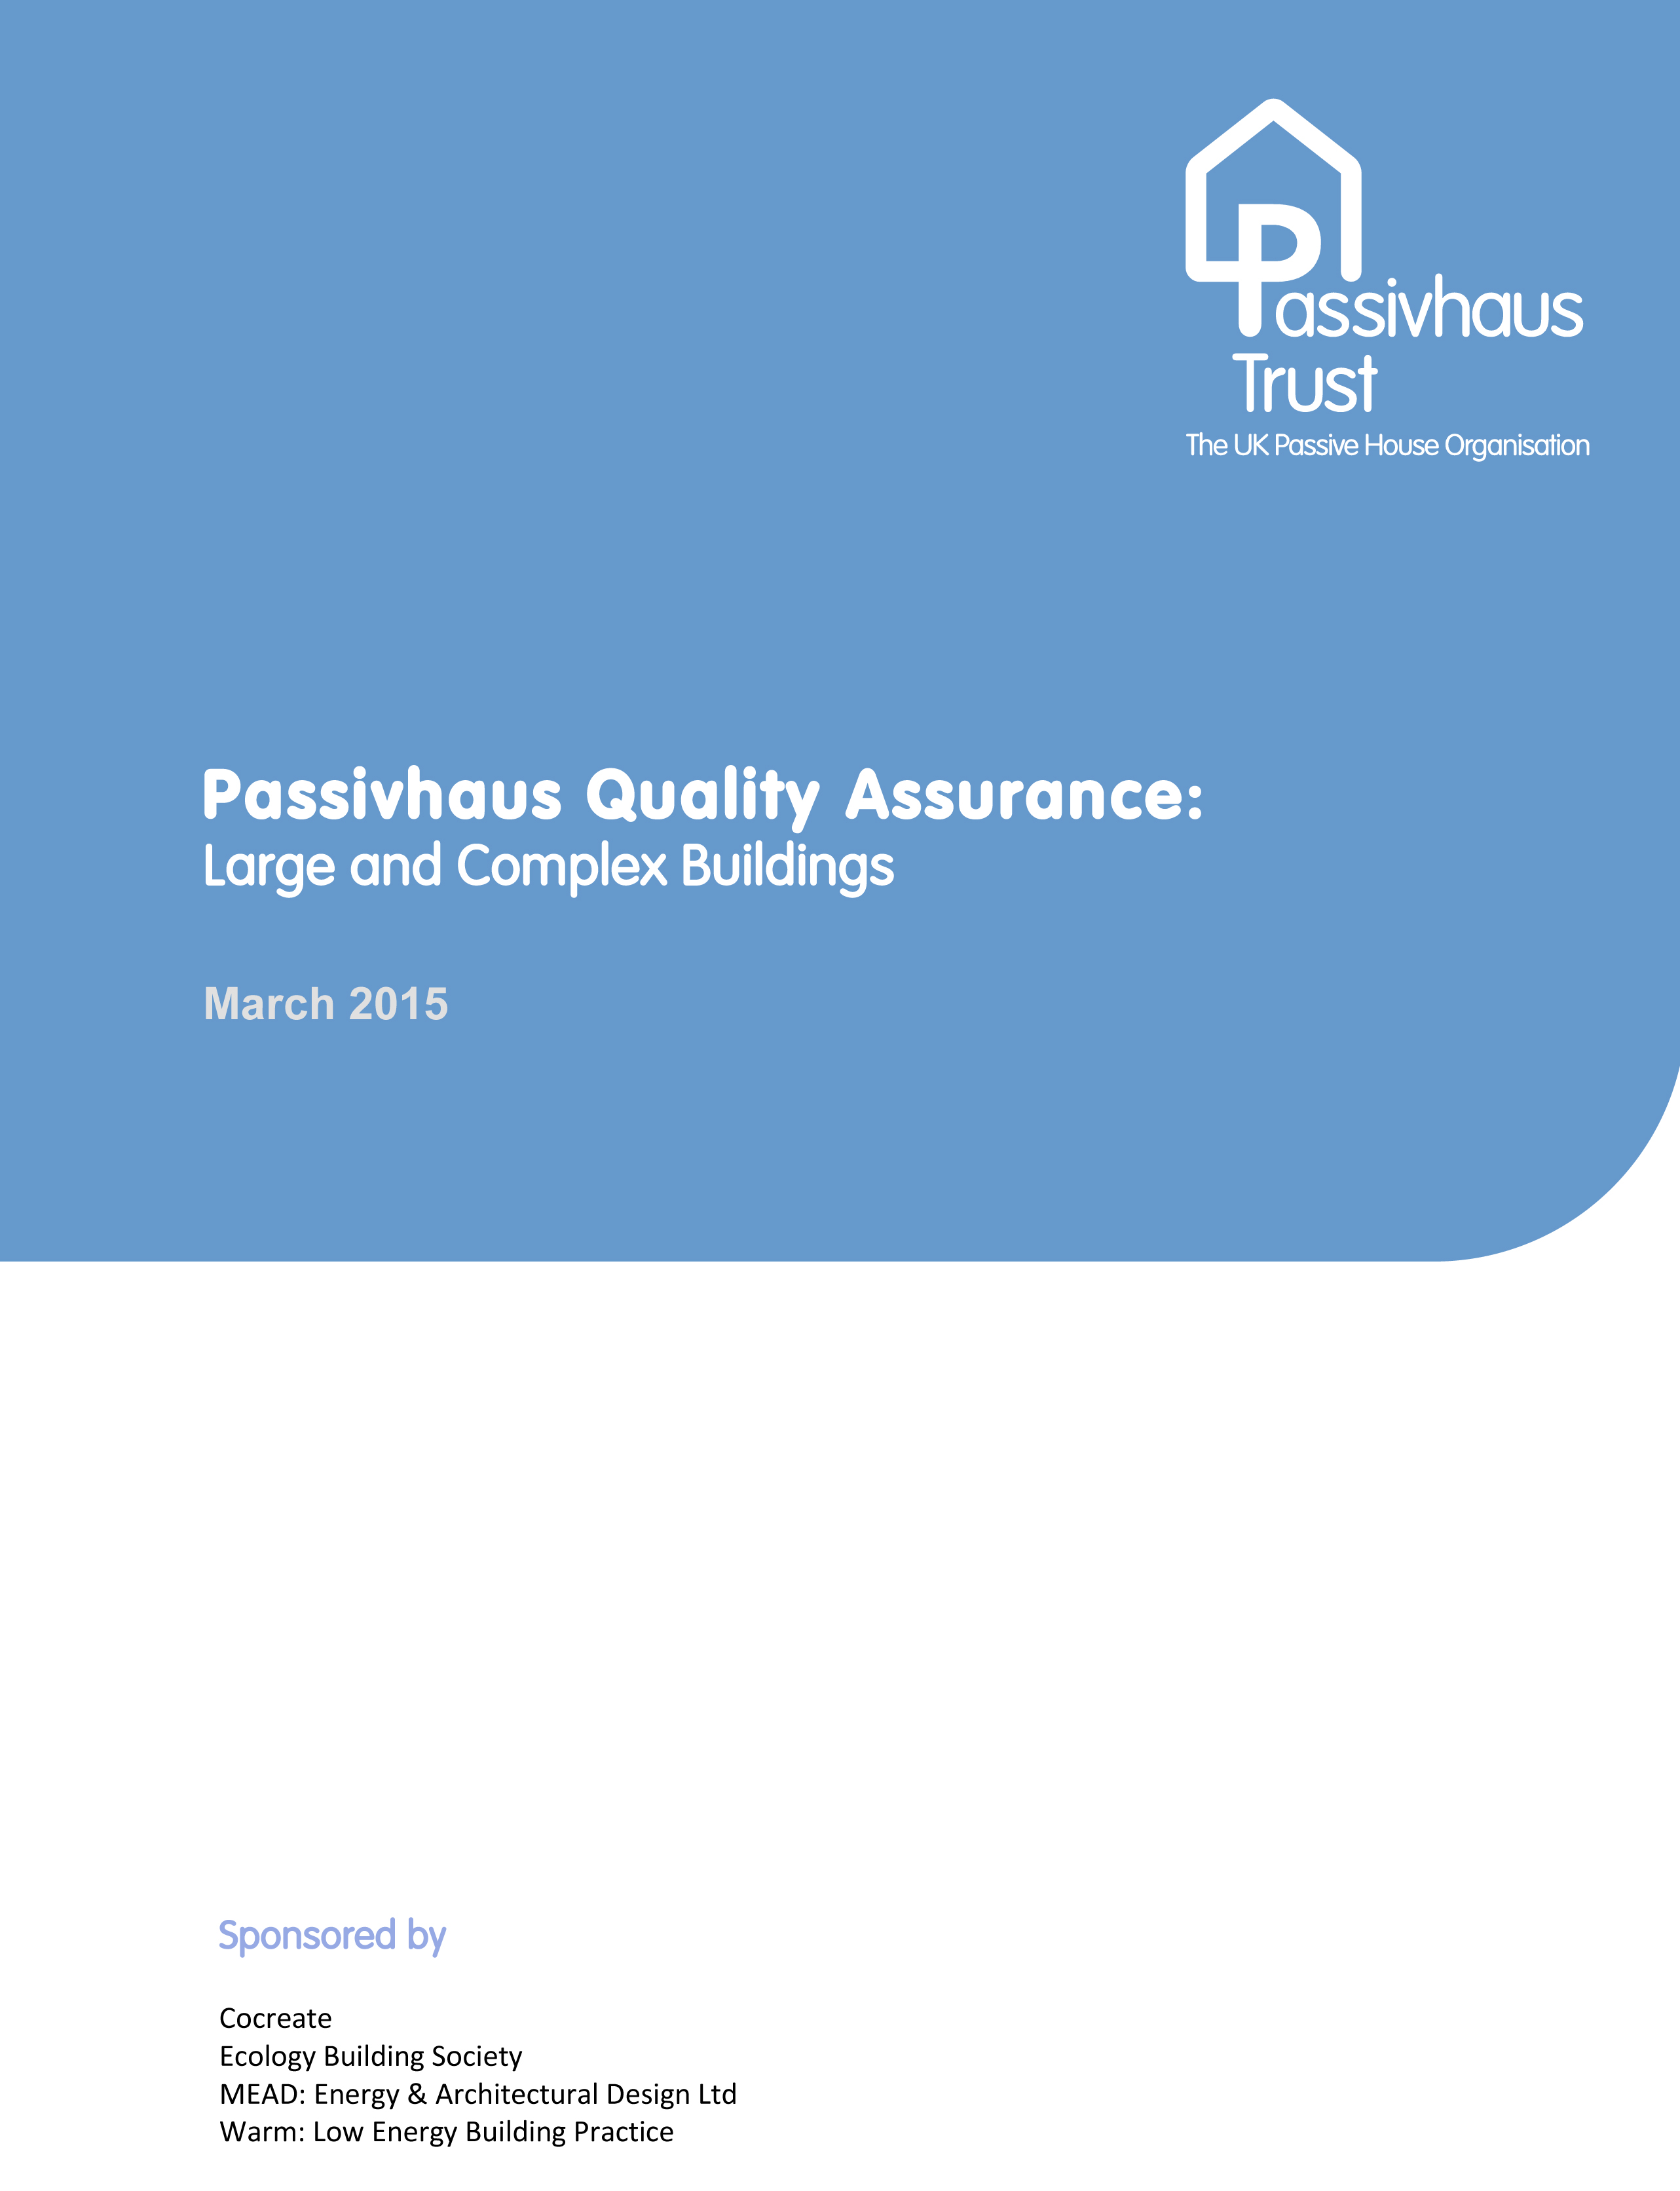 Passivhaus Quality Assurance Guide